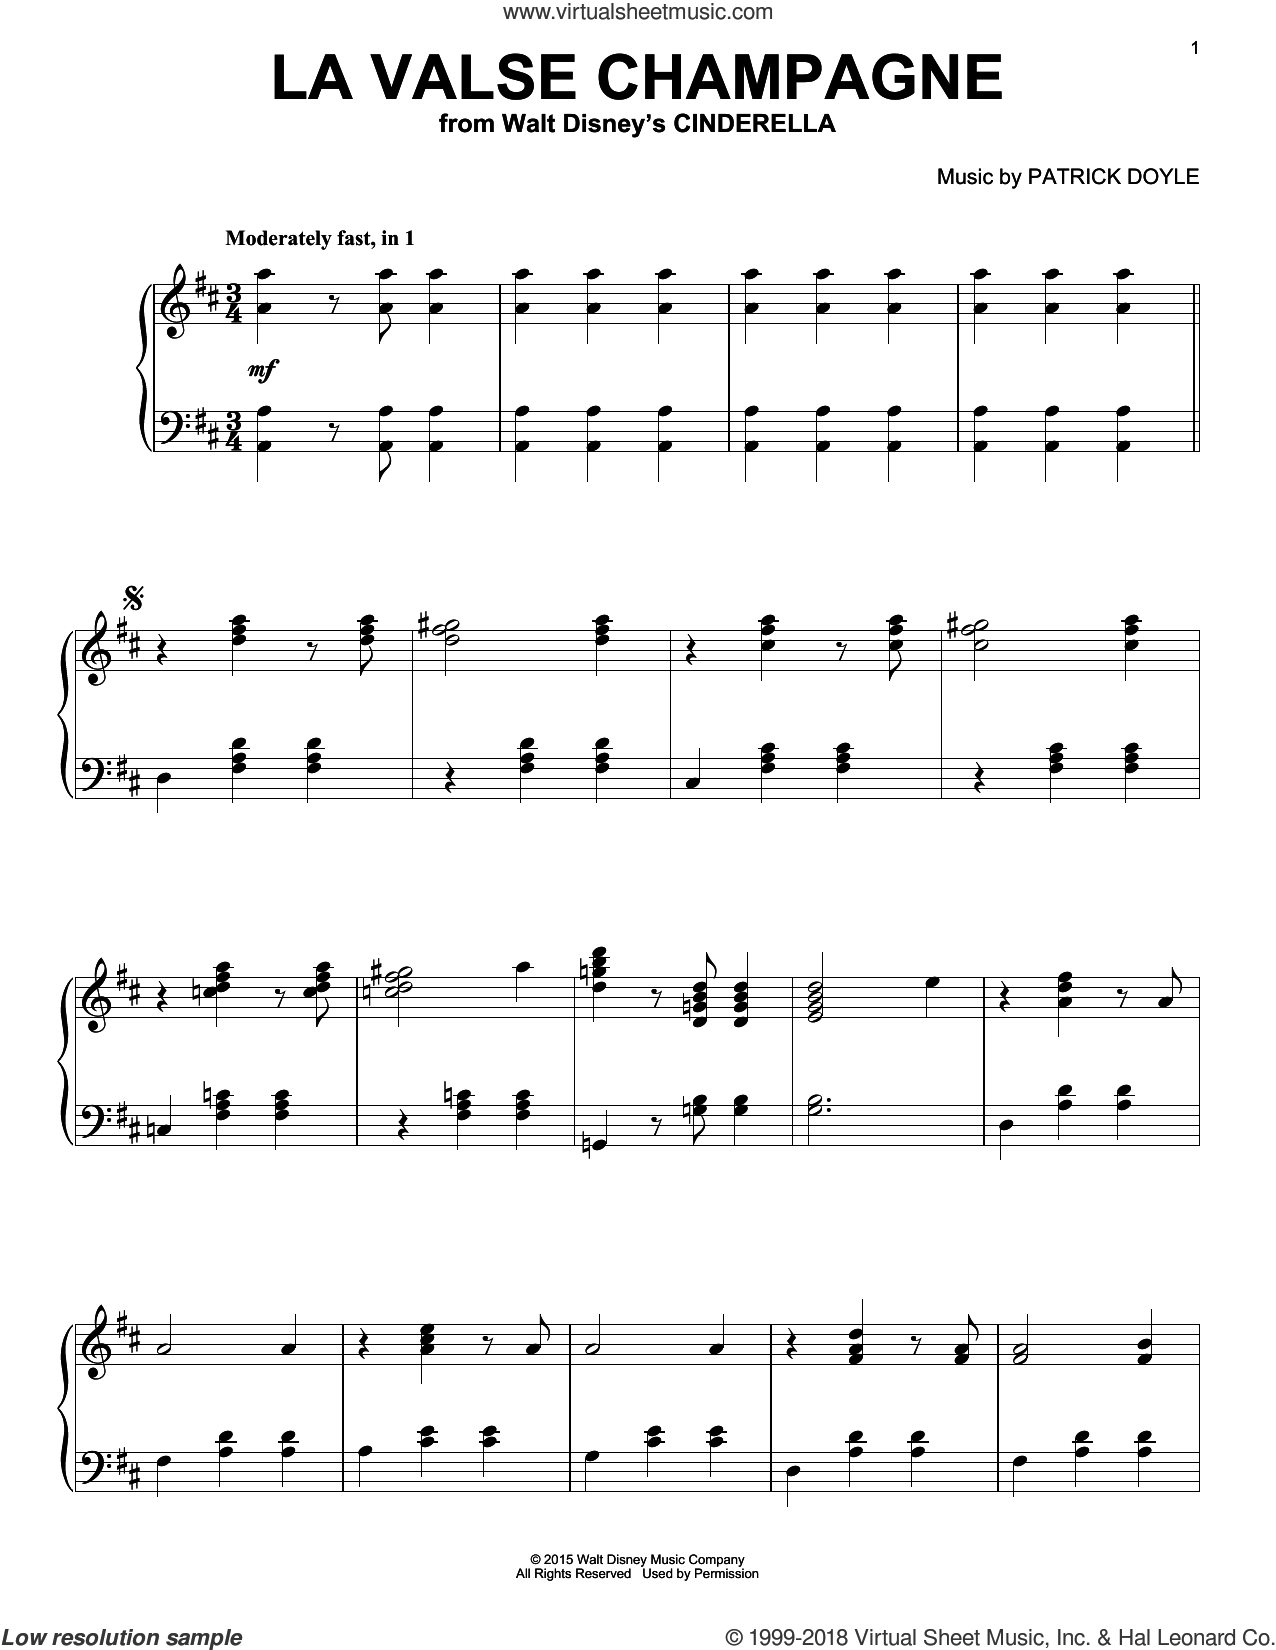 La Valse Champagne sheet music for piano solo by Patrick Doyle. Score Image Preview.